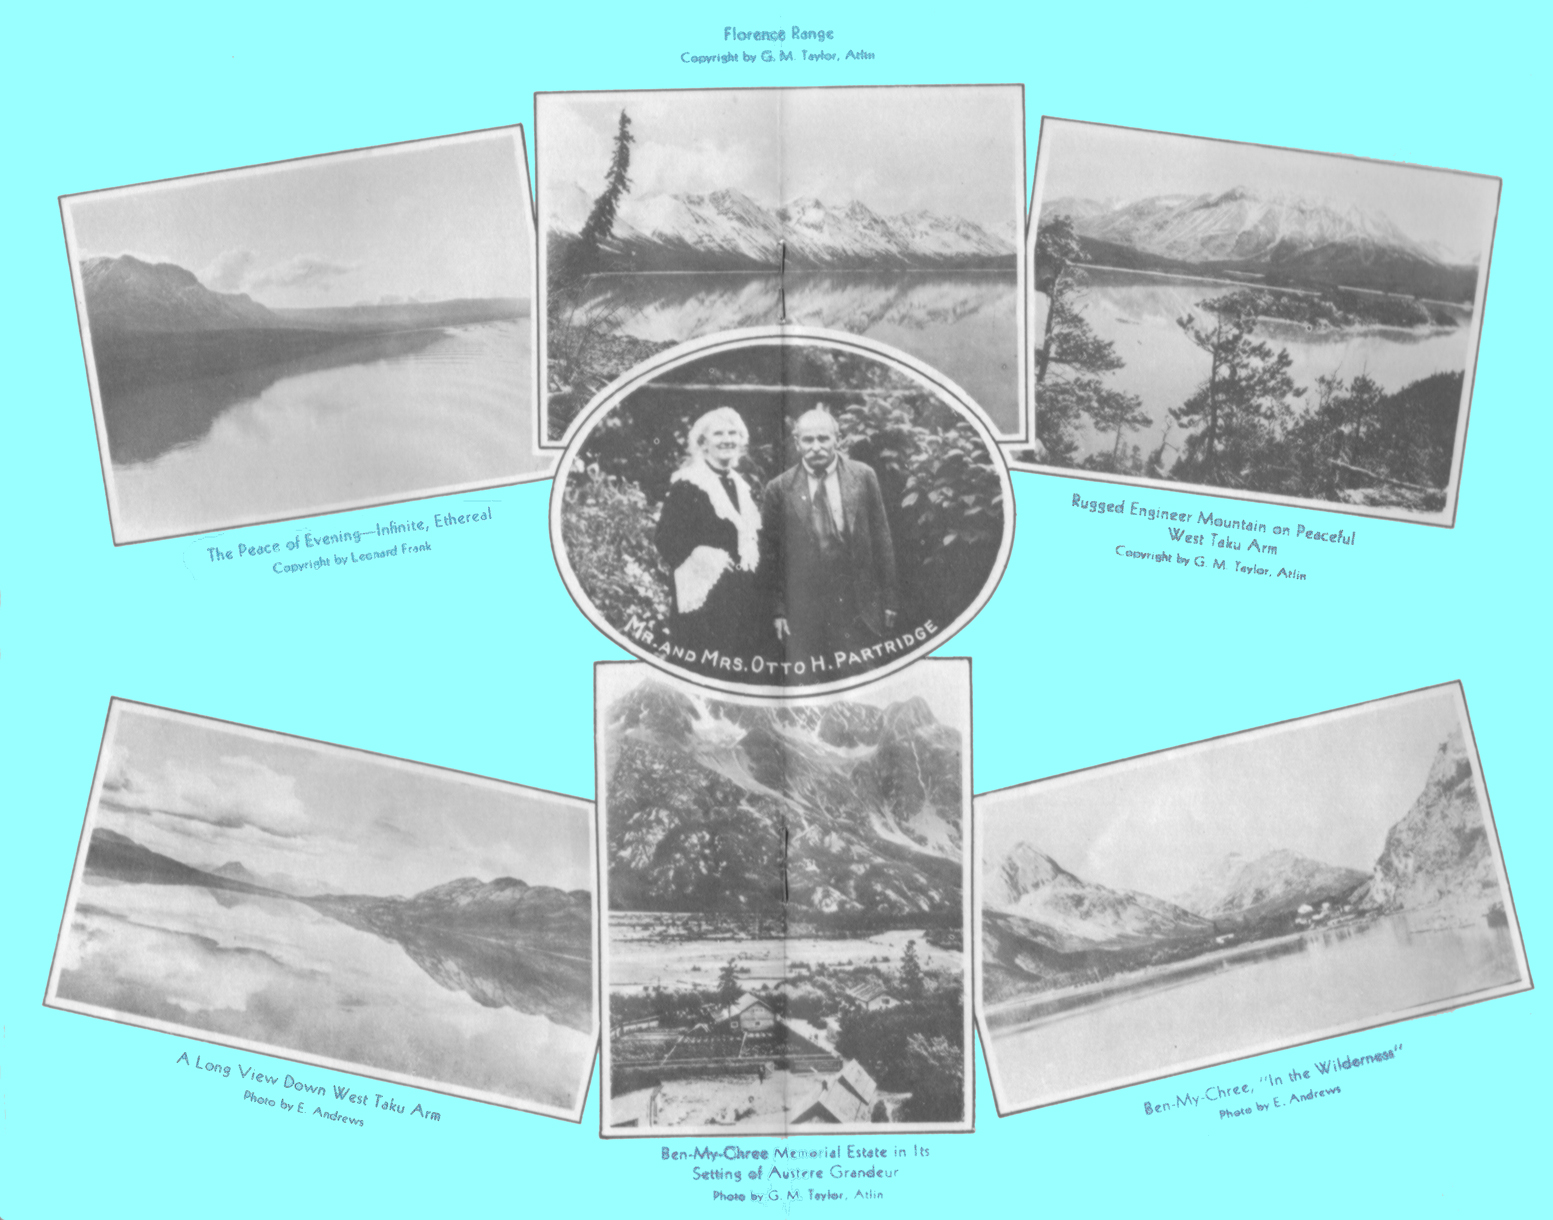 Black and white photograph montage of Otto Partridge, Mrs. Partrige,  West Taku Arm,mountains, and Ben-My-Chree: the house and outbuildings, in Alaska, by E. Andrews, Leonard Frank and G. M. Taylor, Atlin.